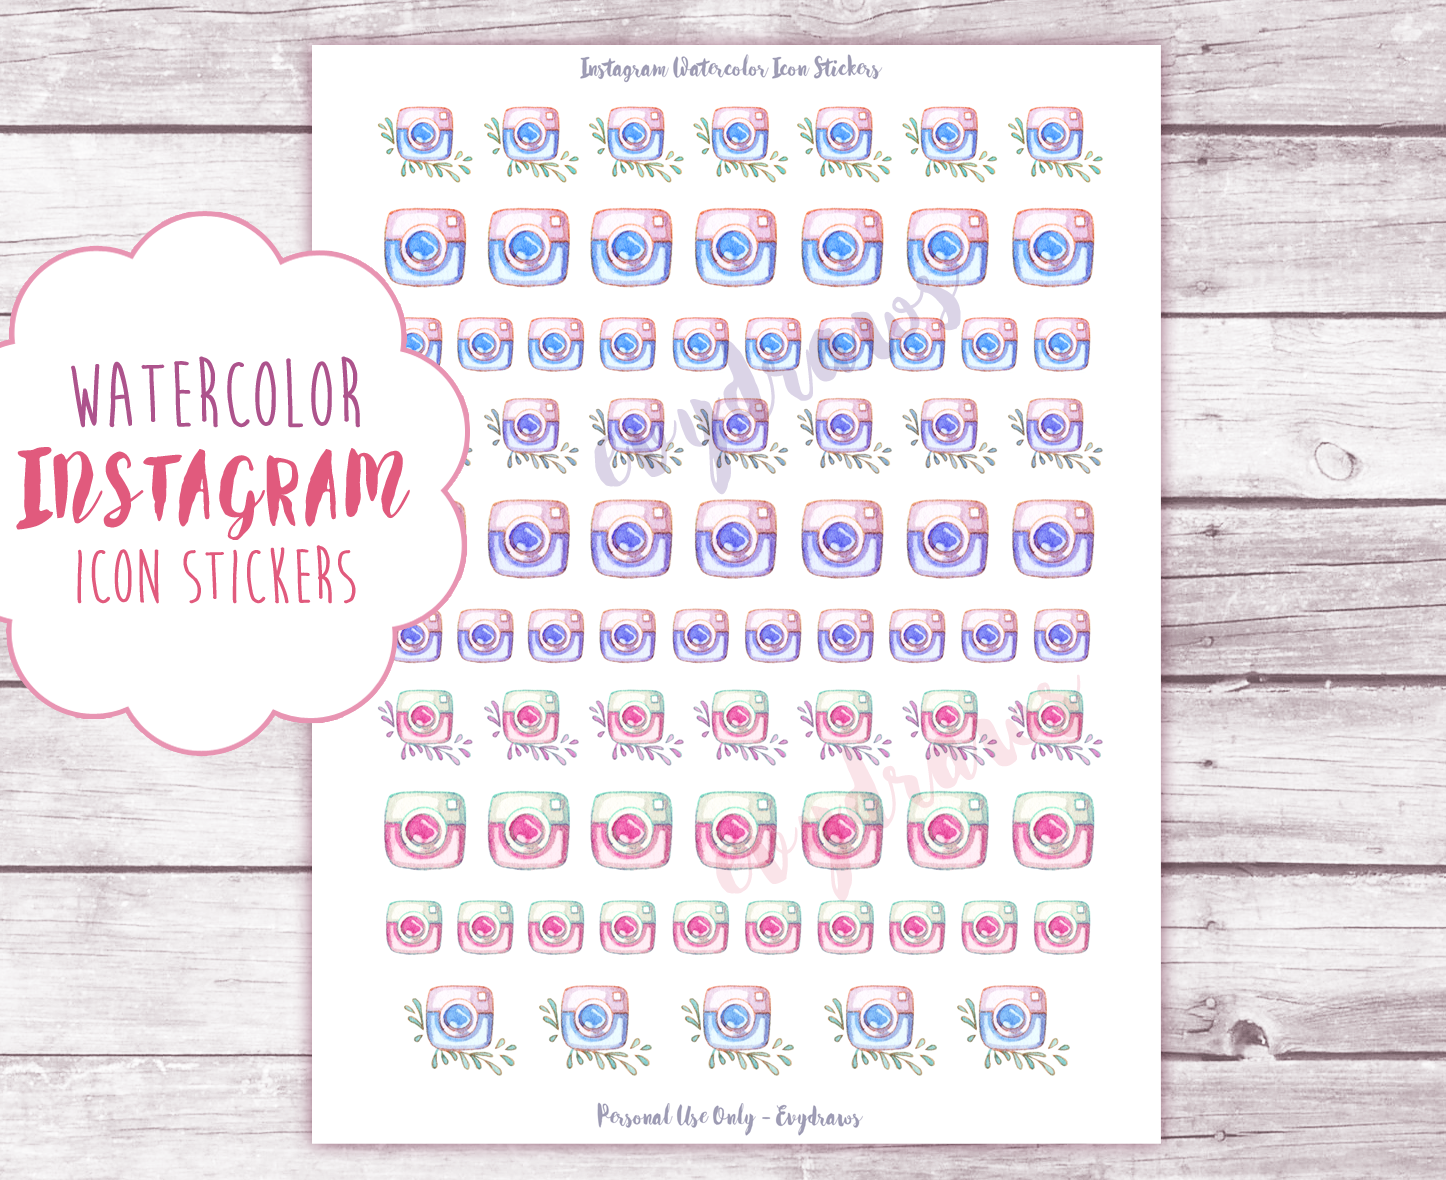 By the way: This printable Instagram icon sticker sheet is now up in the password-protected library. Just sign up for  my newsletter  to get access!